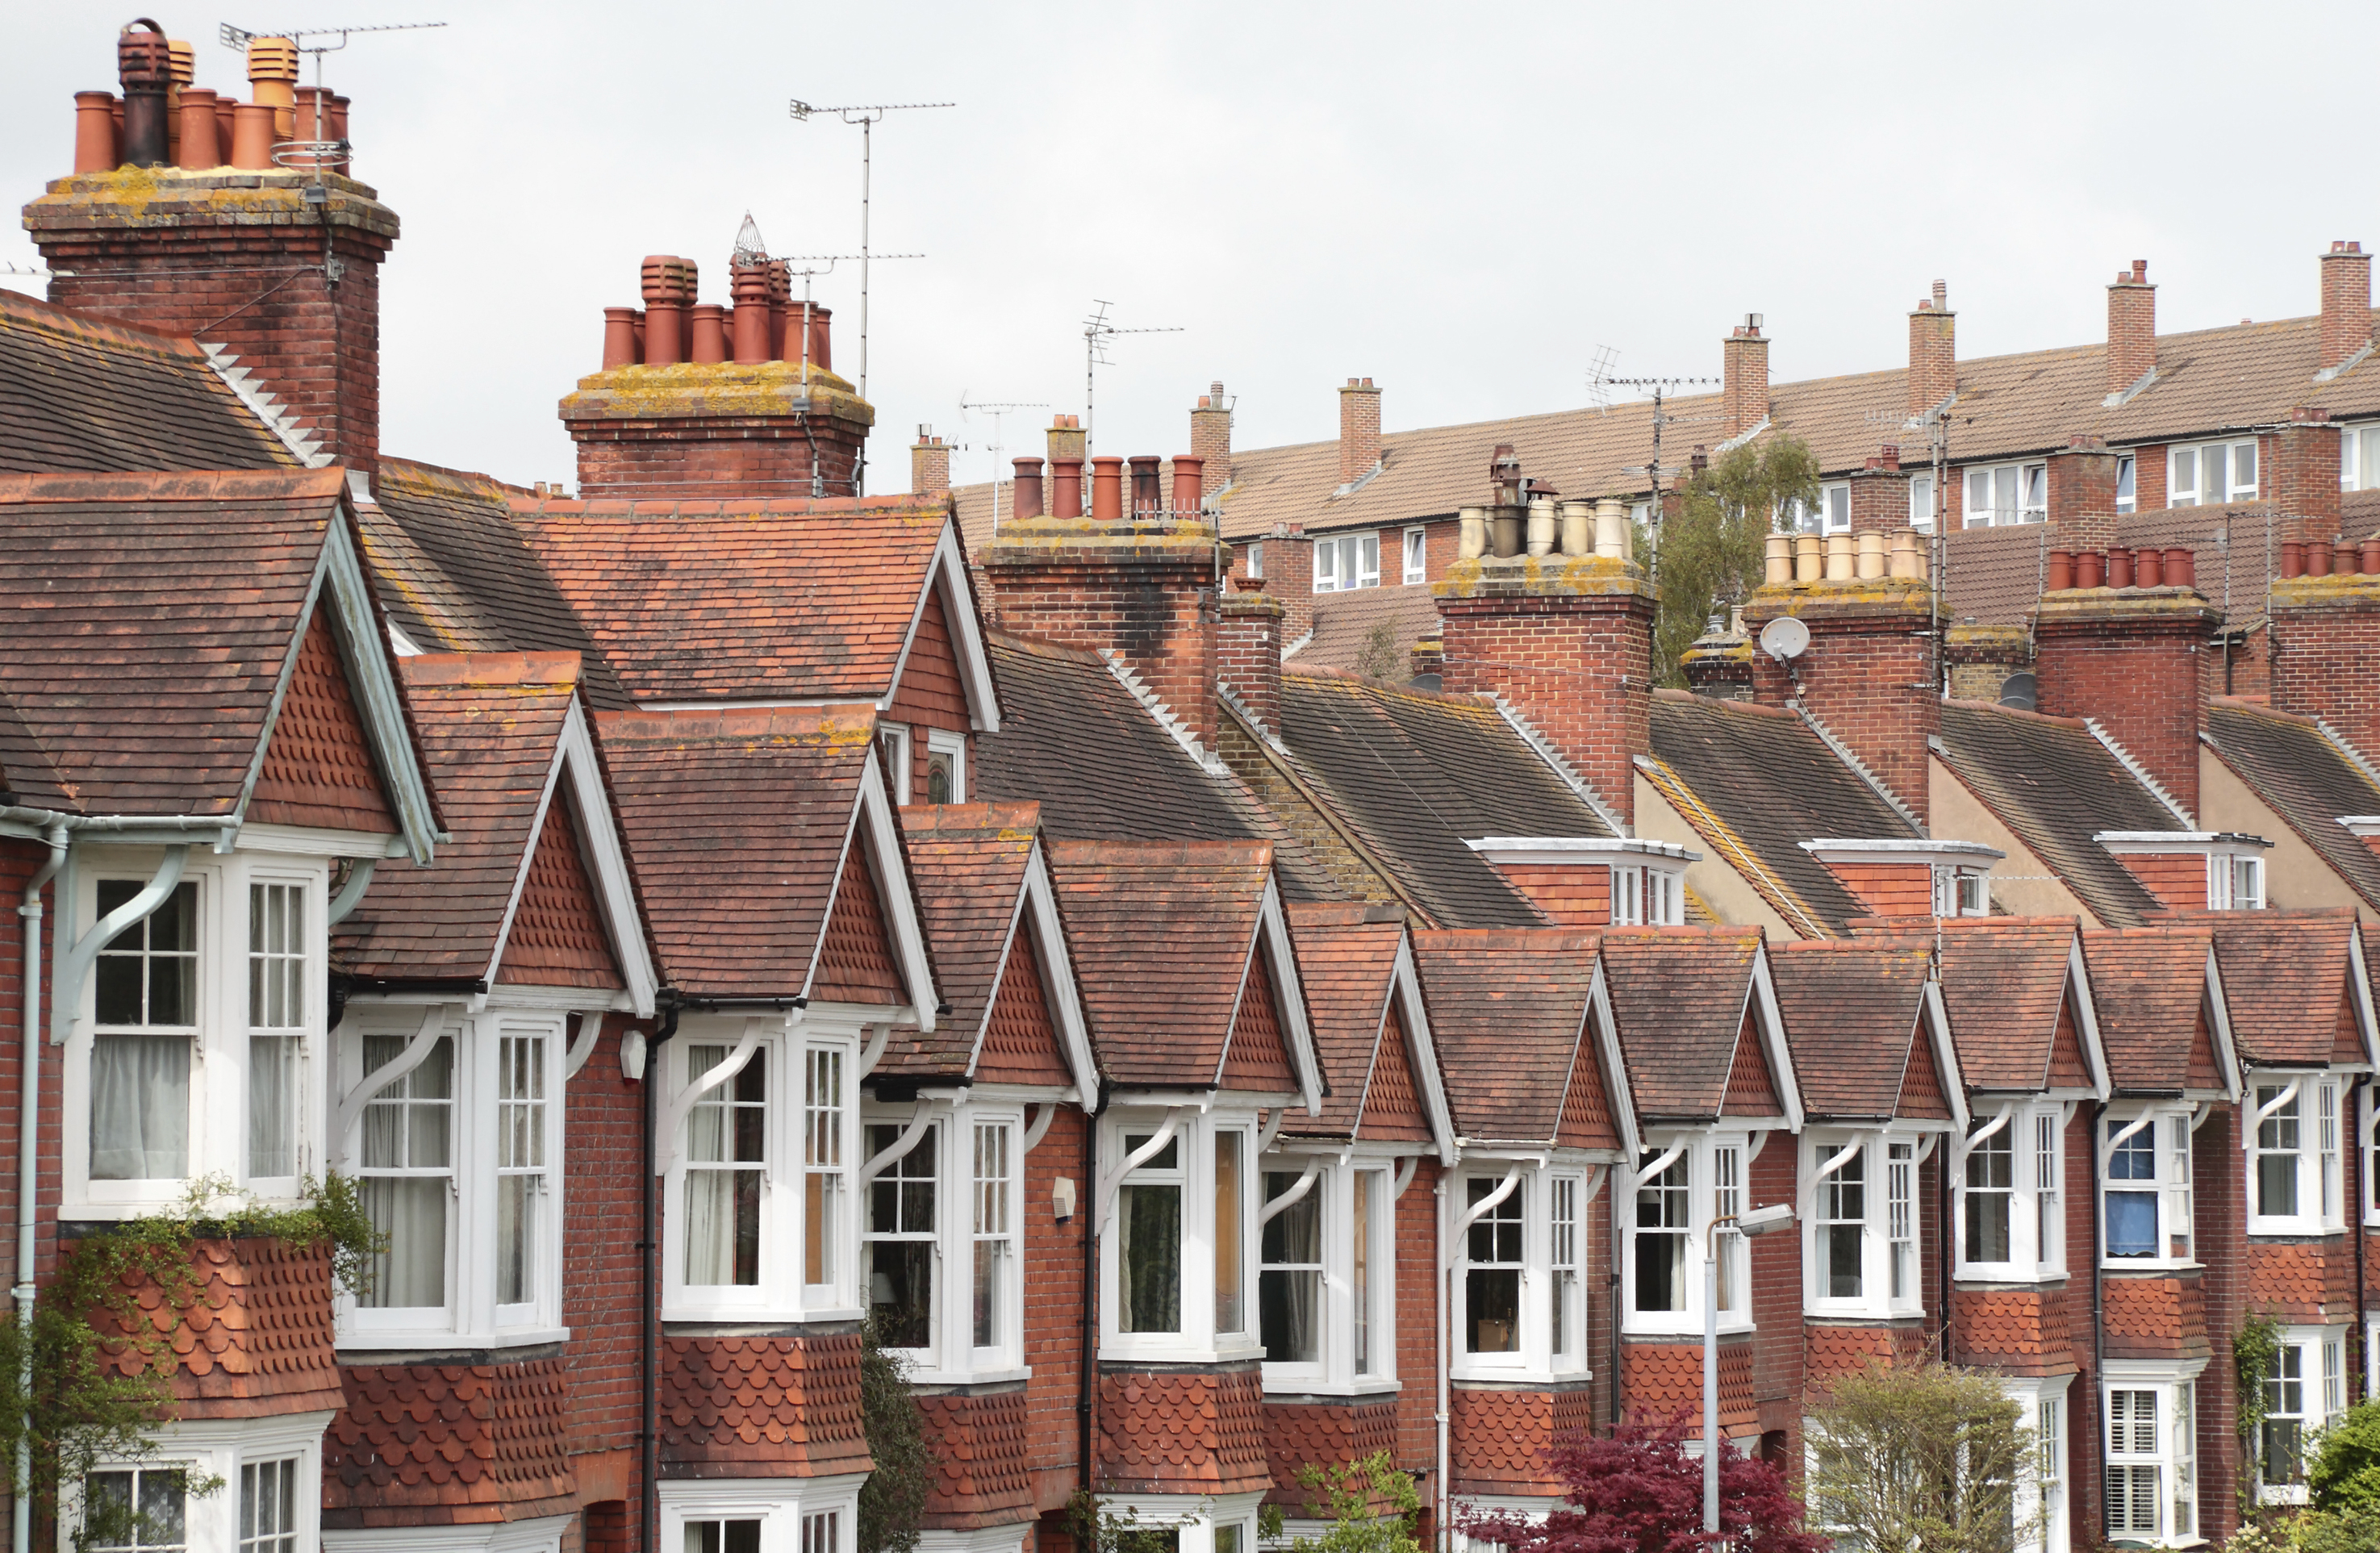 Edwardian terrace in the heart of southeast england 000013584135 large